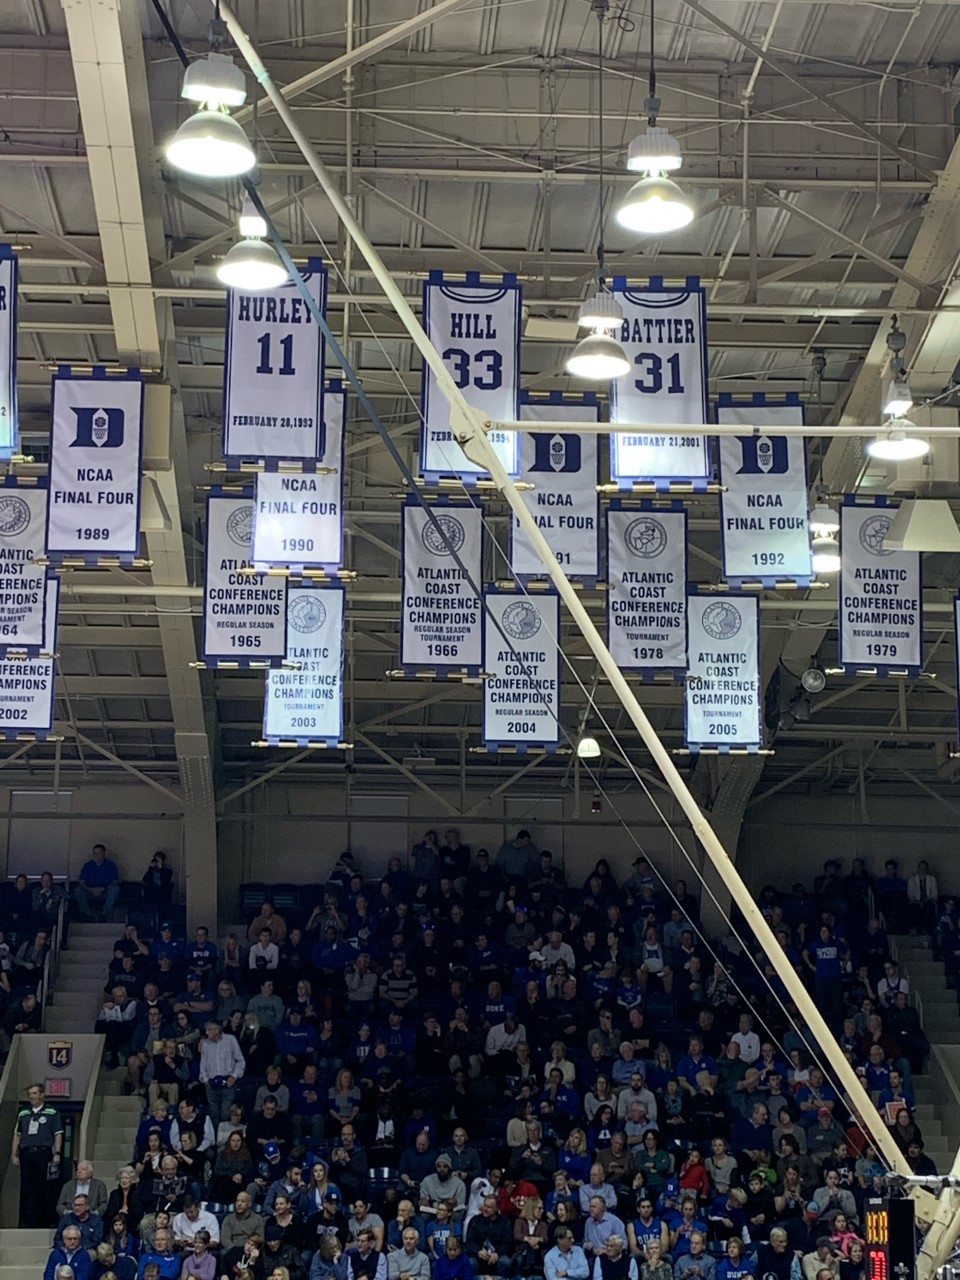 Among the decor that is spread across Cameron Indoor Stadium, the retired jerseys of Duke basketball greats such as Bobby Hurley hang from the ceiling.